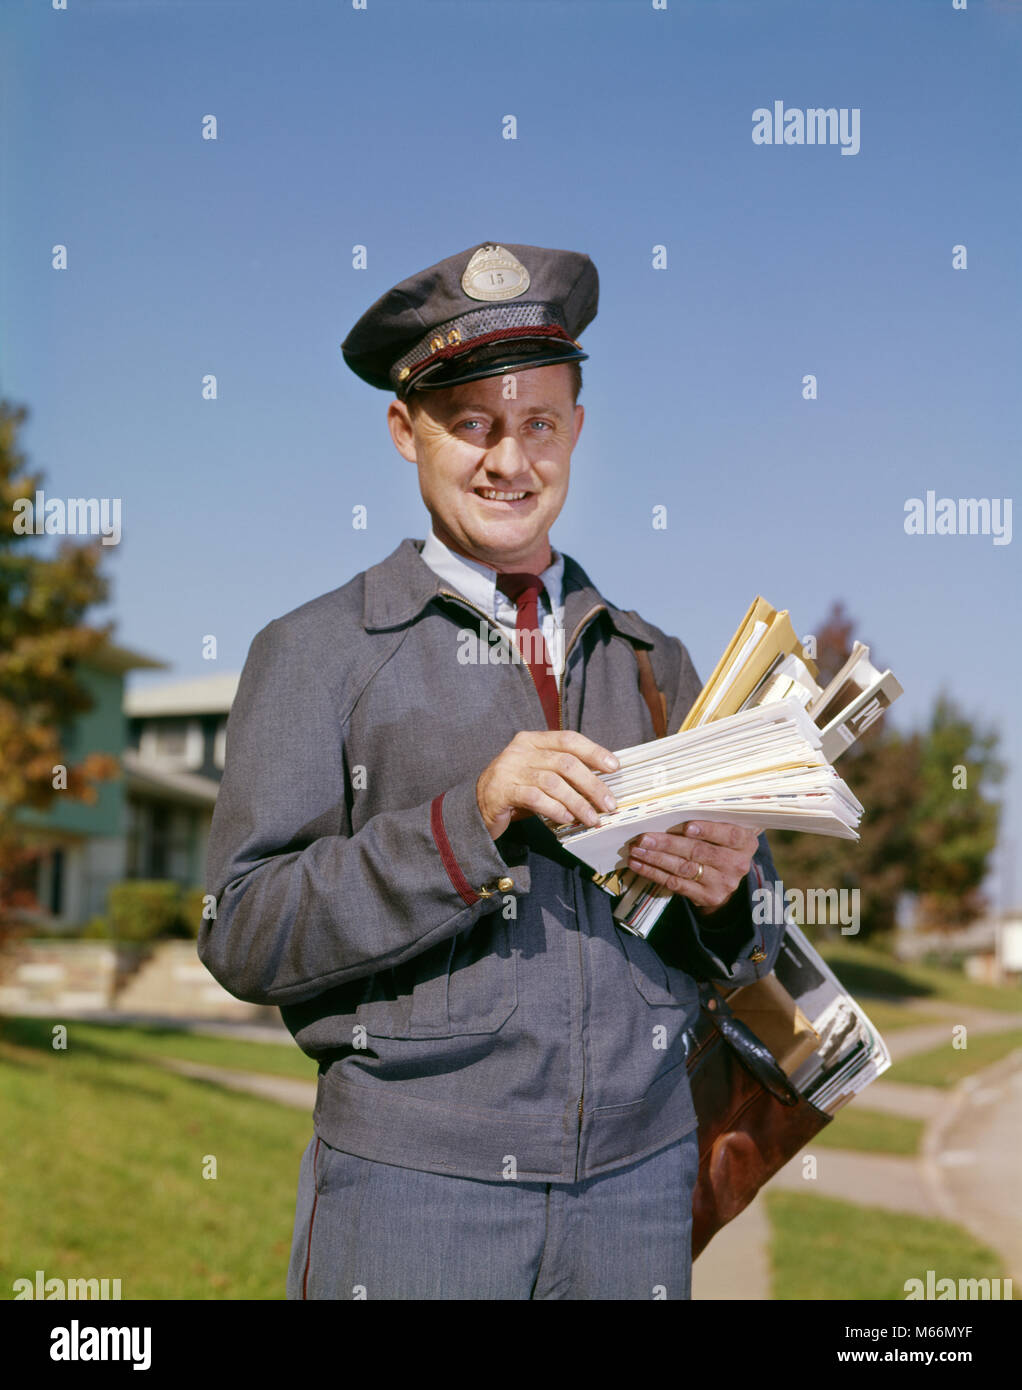 1960s PORTRAIT OF SMILING SUBURBAN MAILMAN LOOKING AT CAMERA - kp920 HAR001 HARS HEALTHINESS UNITED STATES COPY - Stock Image